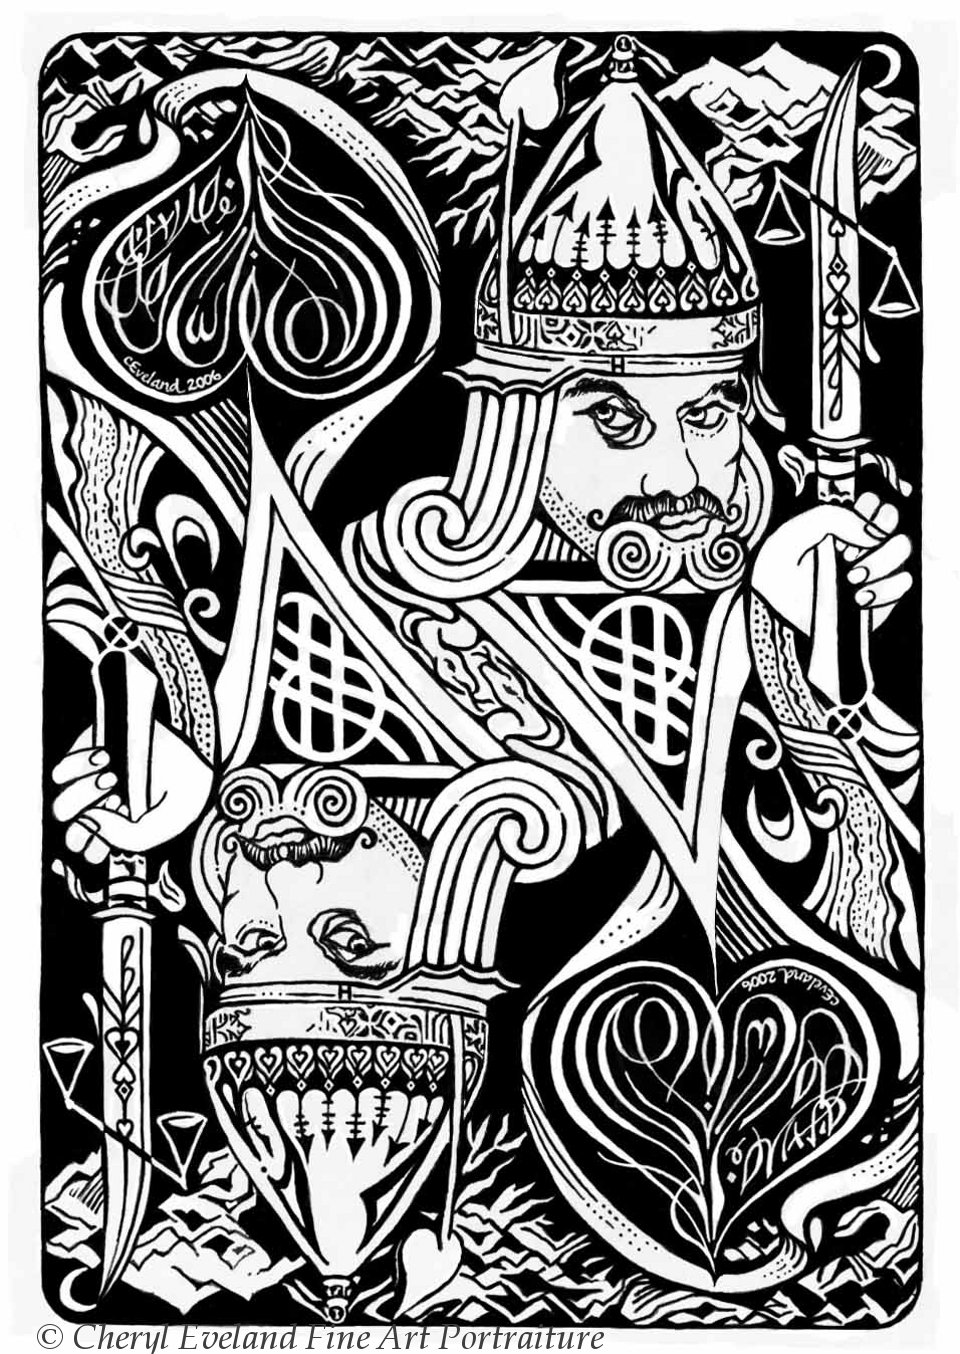 Category Archives: The King of Spades